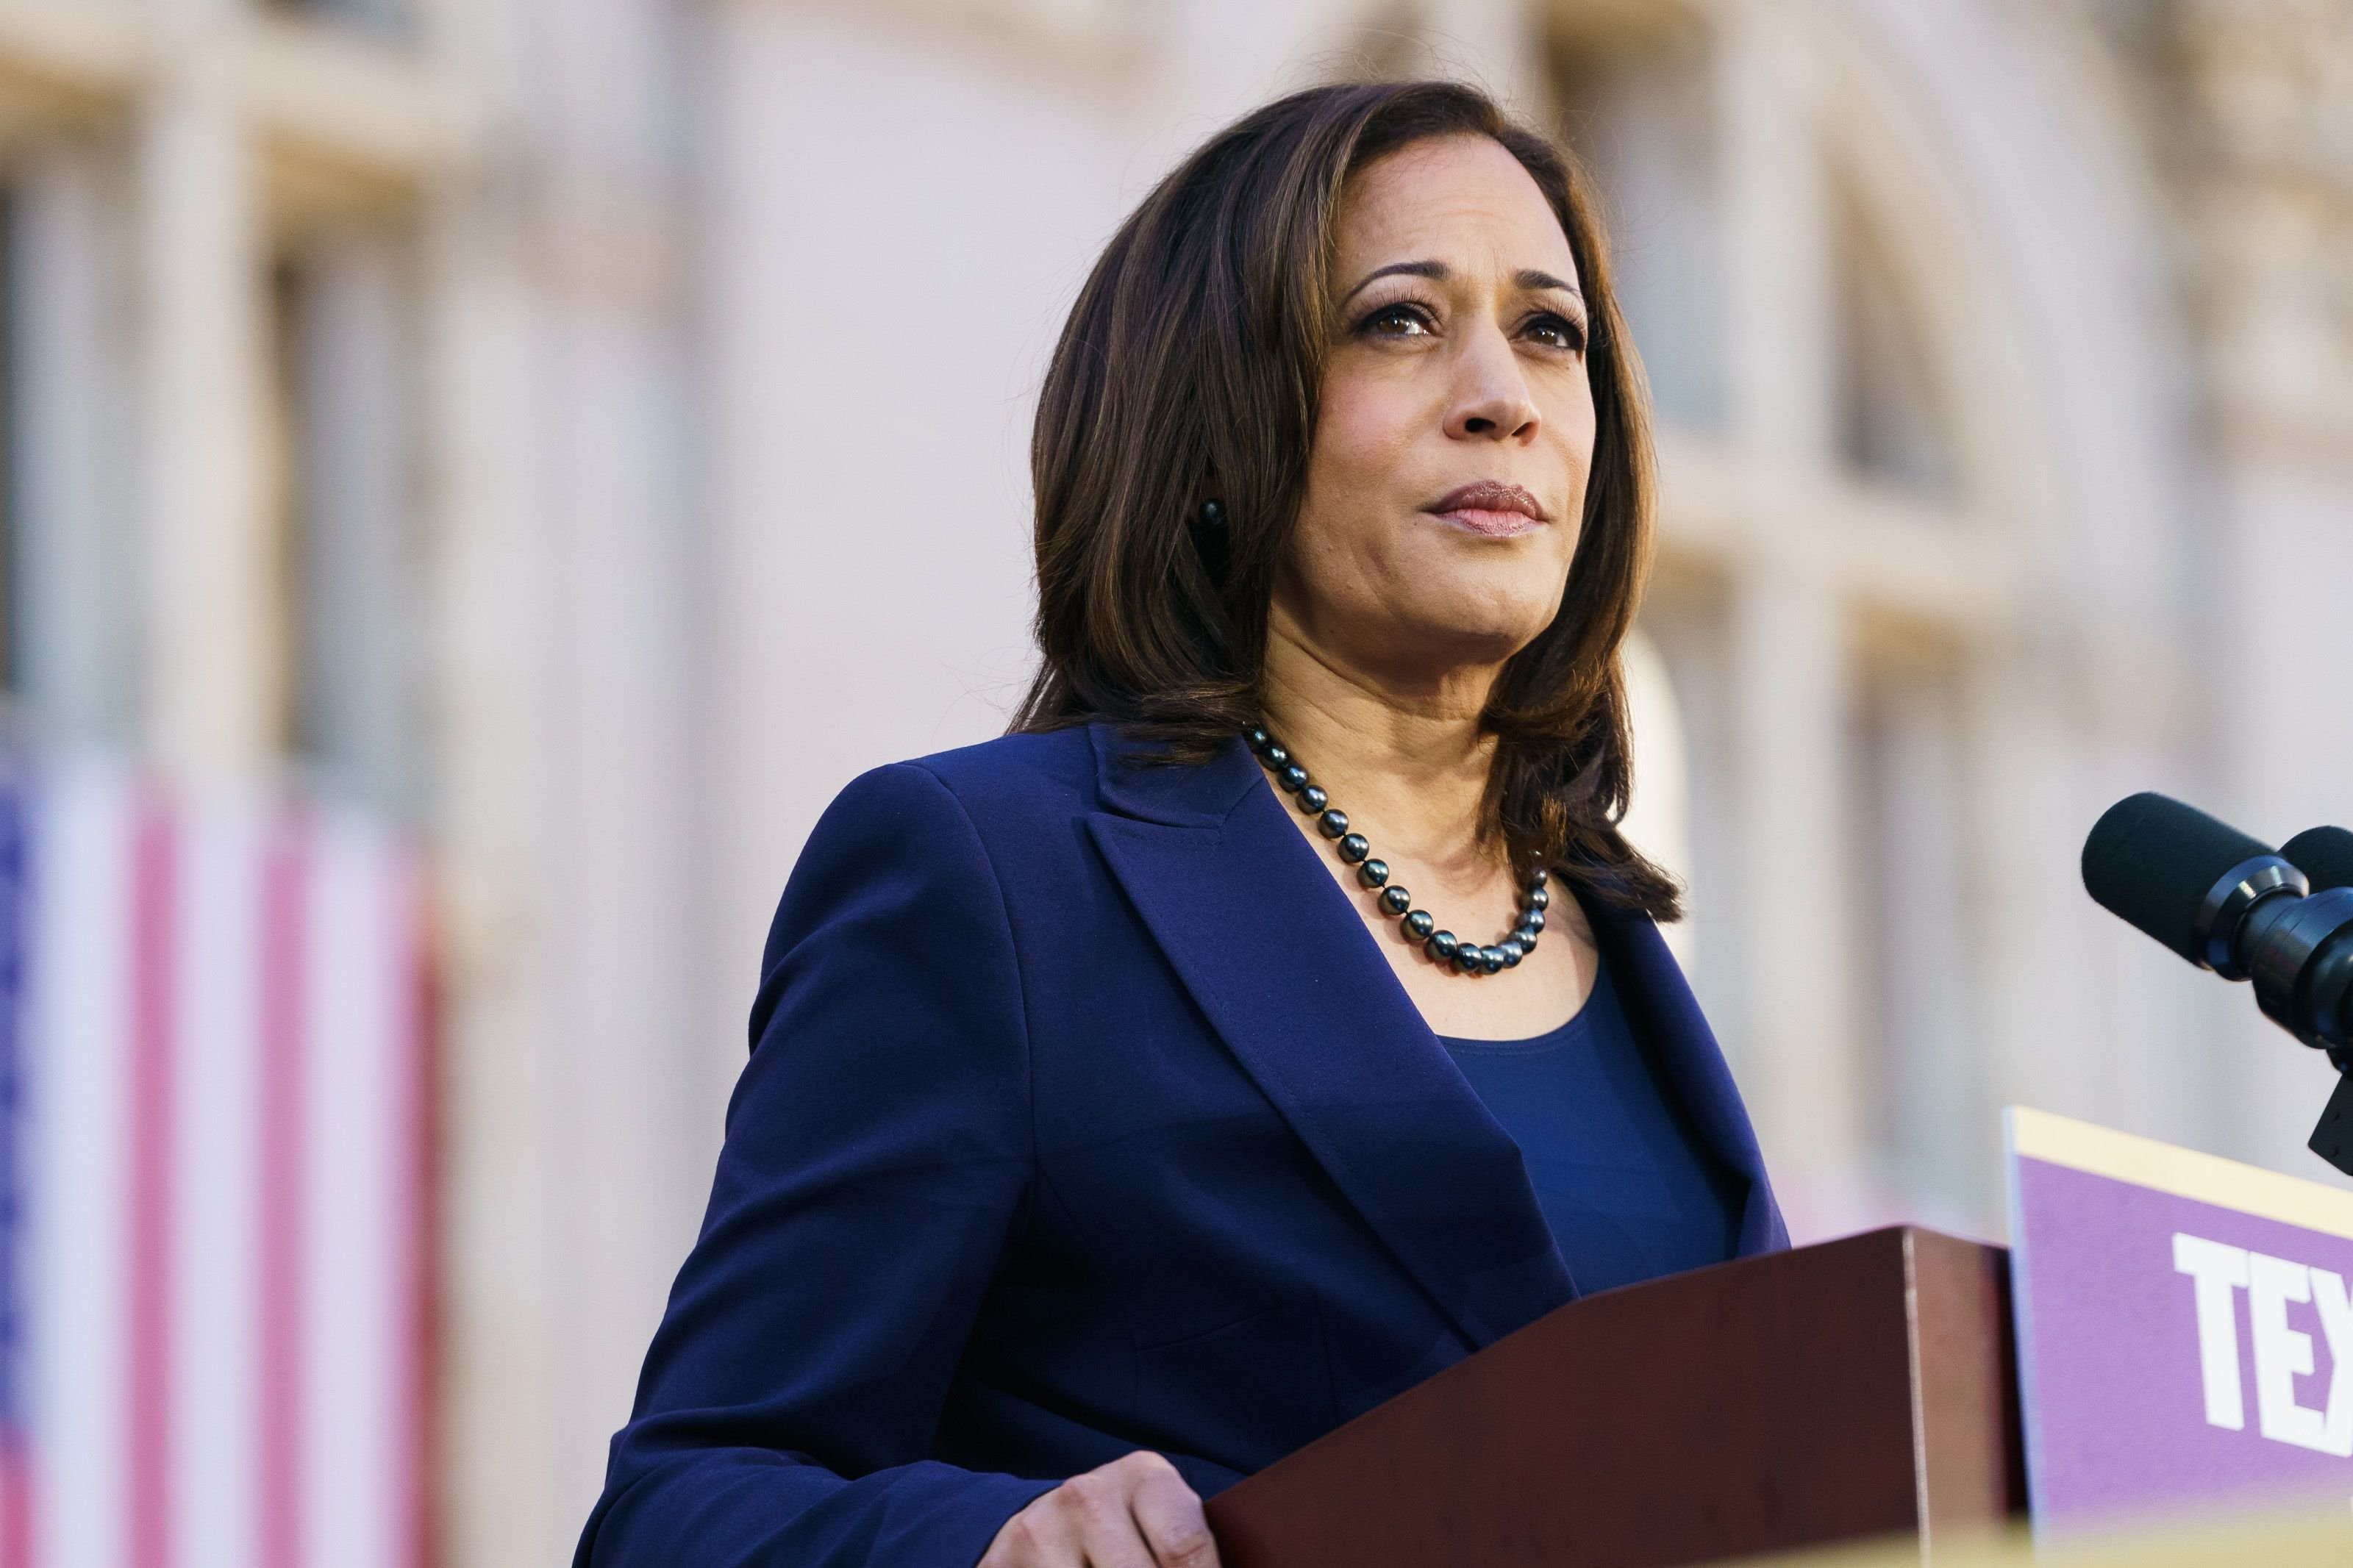 Kamala Harris spoke to her supporters at her presidential campaign launch rally in Frank H. Ogawa Plaza on January 27, 2019 | Photo: Getty Images